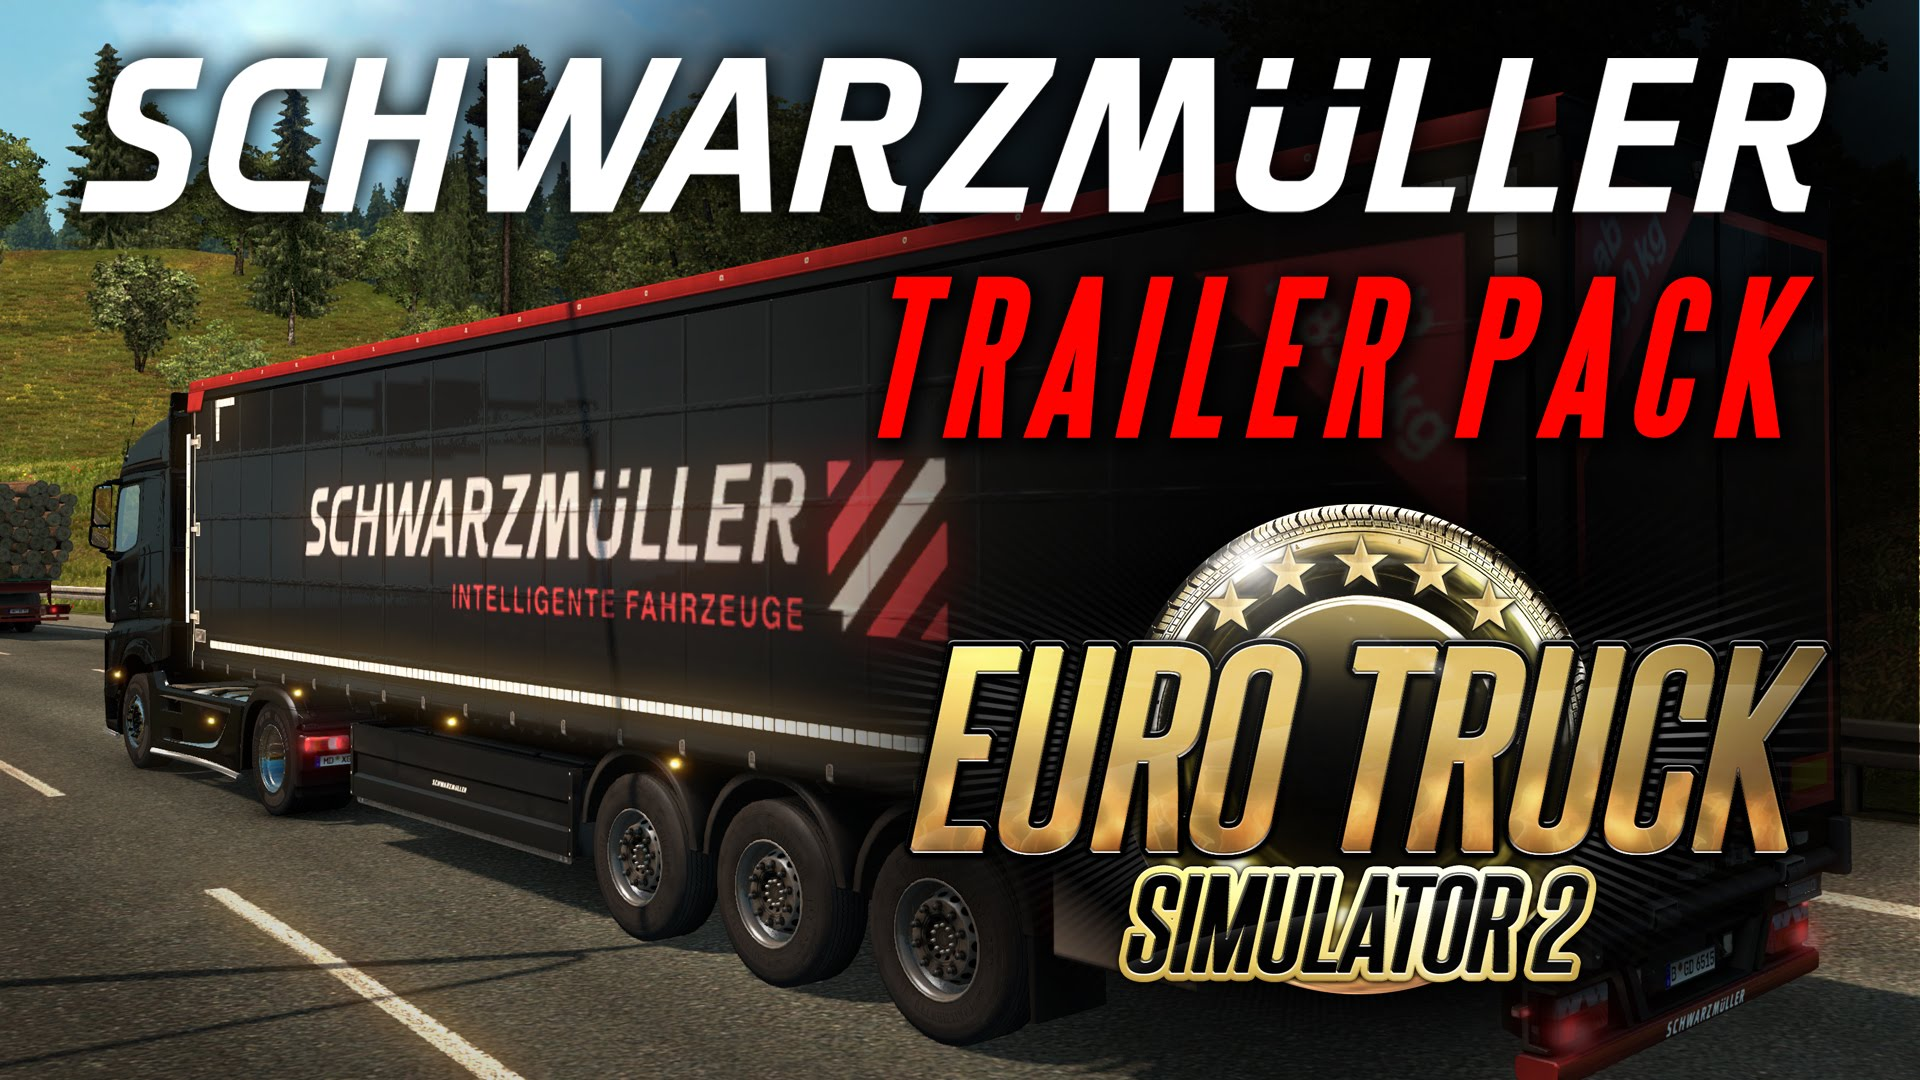 Euro Truck Simulator 2 - Schwarzmüller Trailer Pack DLC (Video)